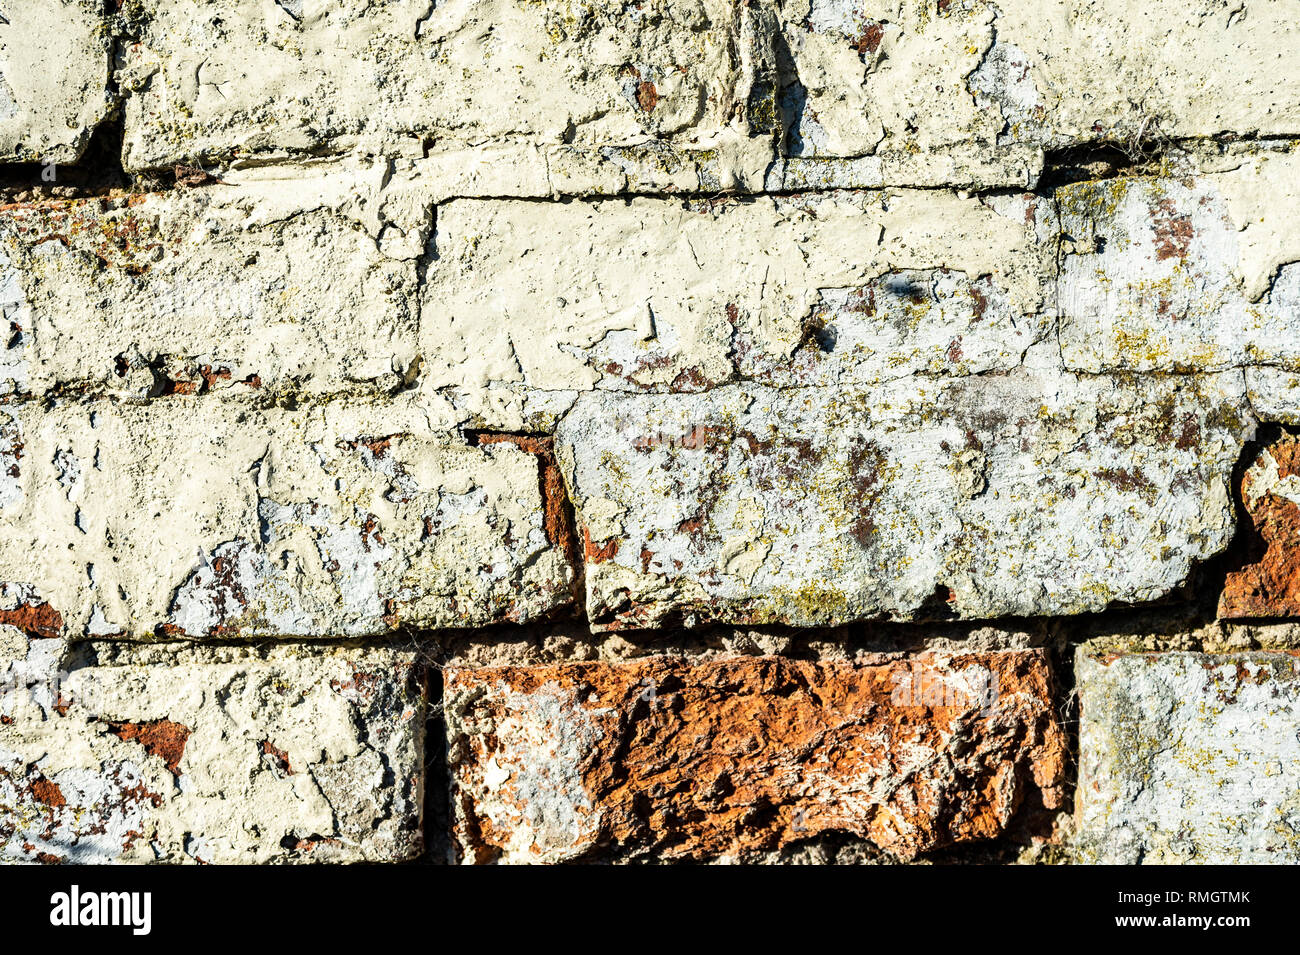 old damaged brick work showing the texture of old bricks - Stock Image